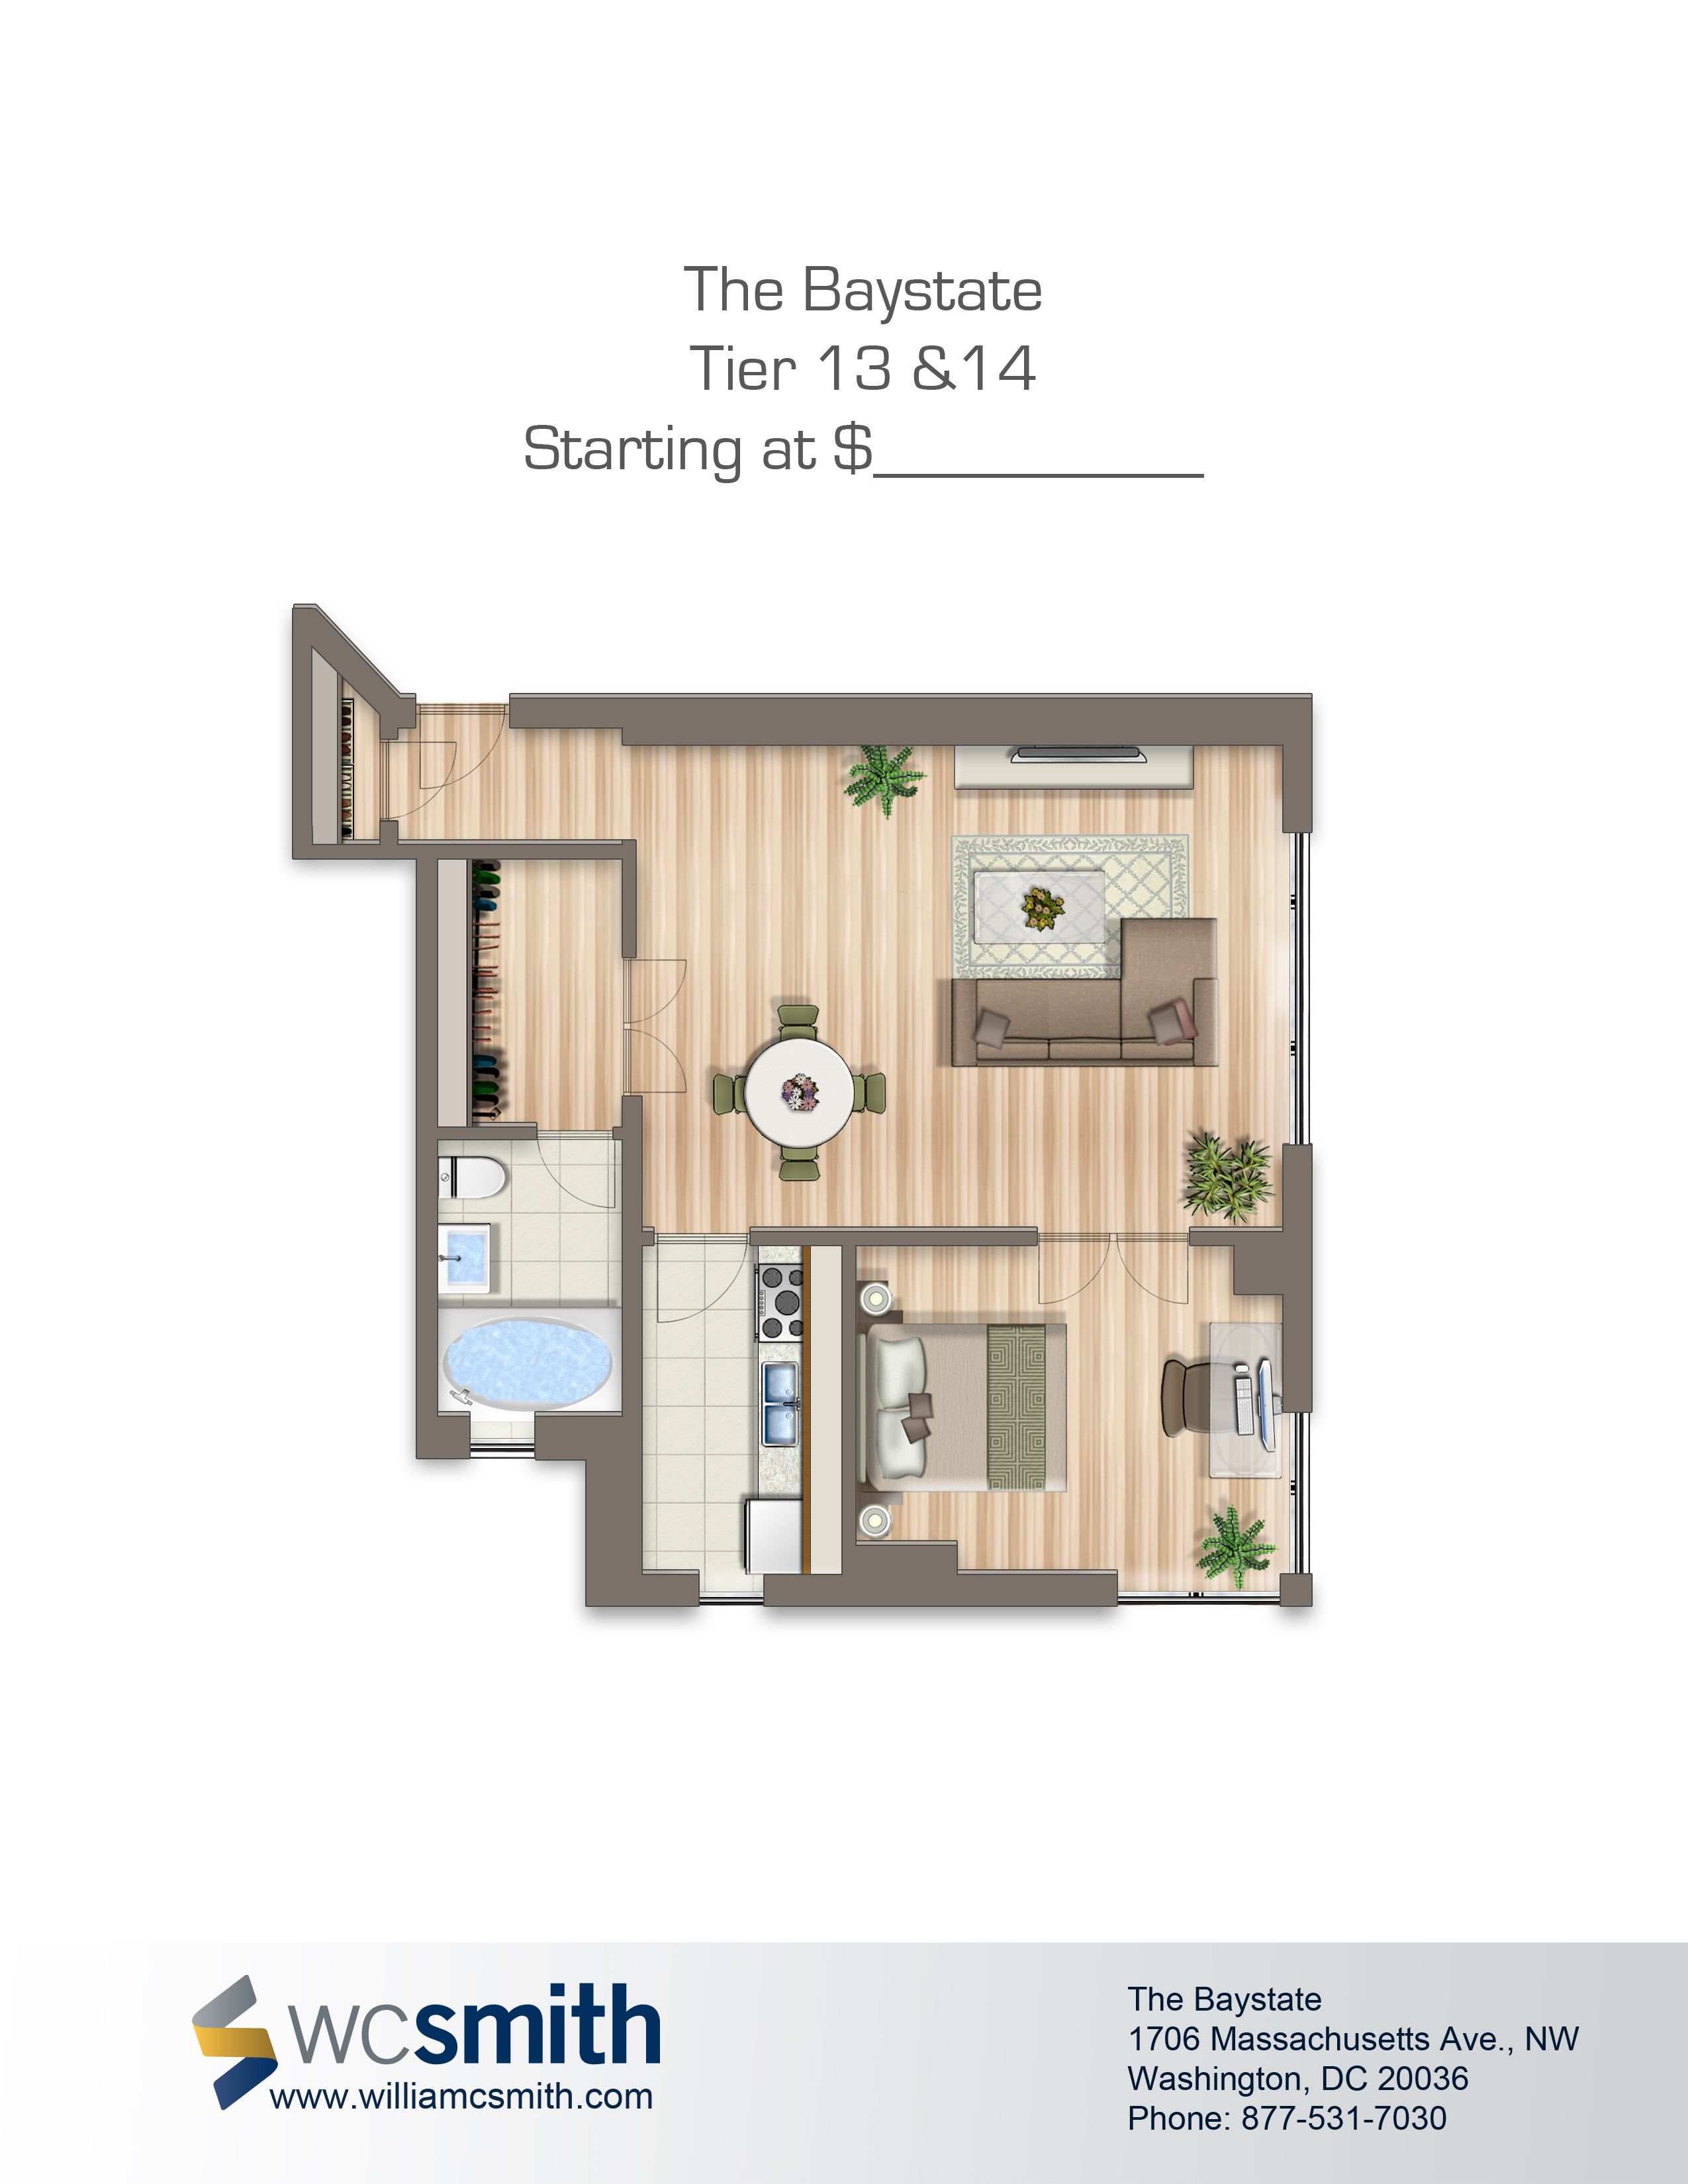 Baystate Apartments Wc Smith Apartment Floor Plans One Bedroom Apartment